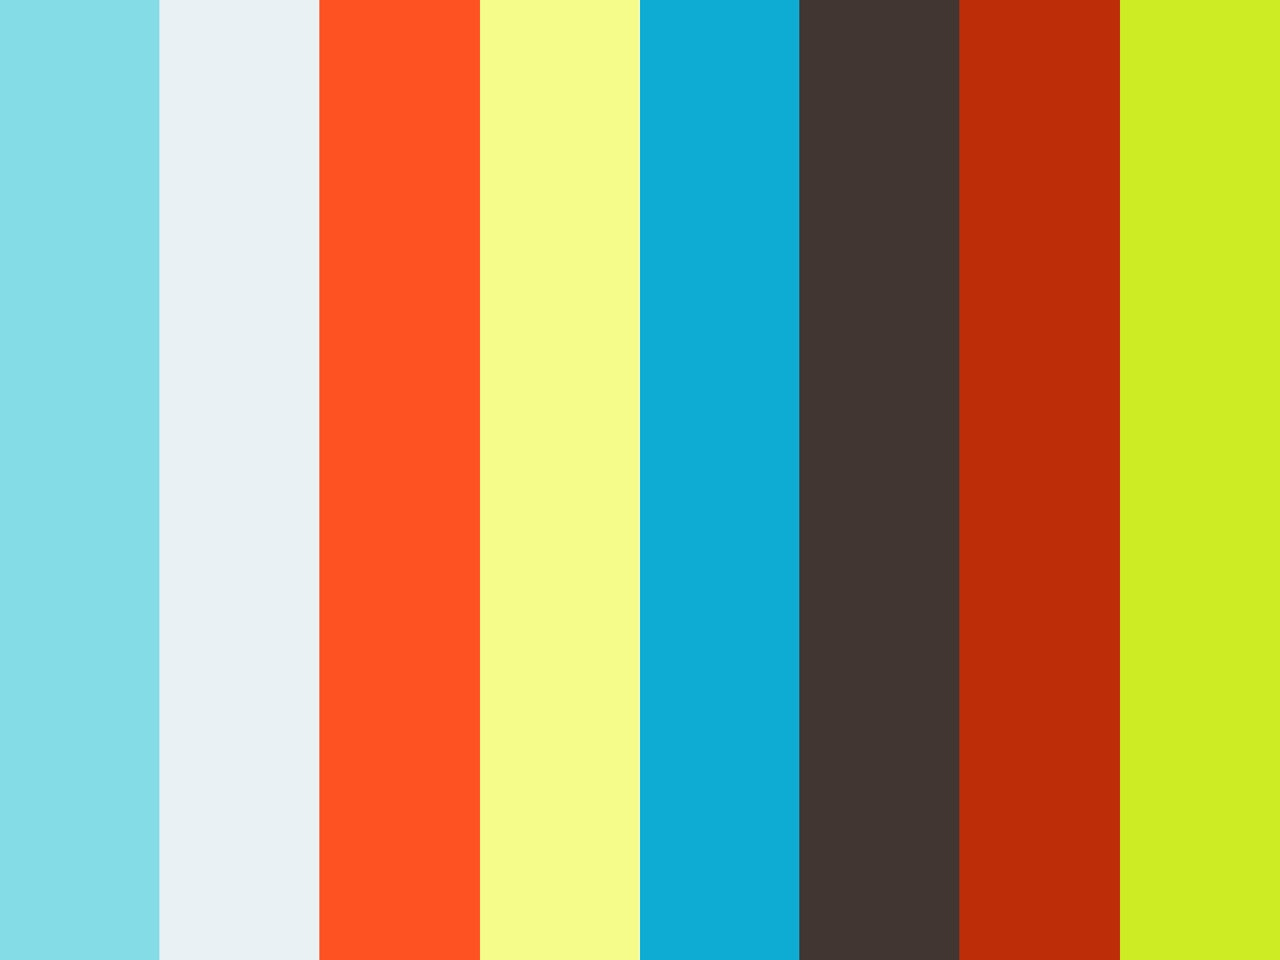 Leo plays ball